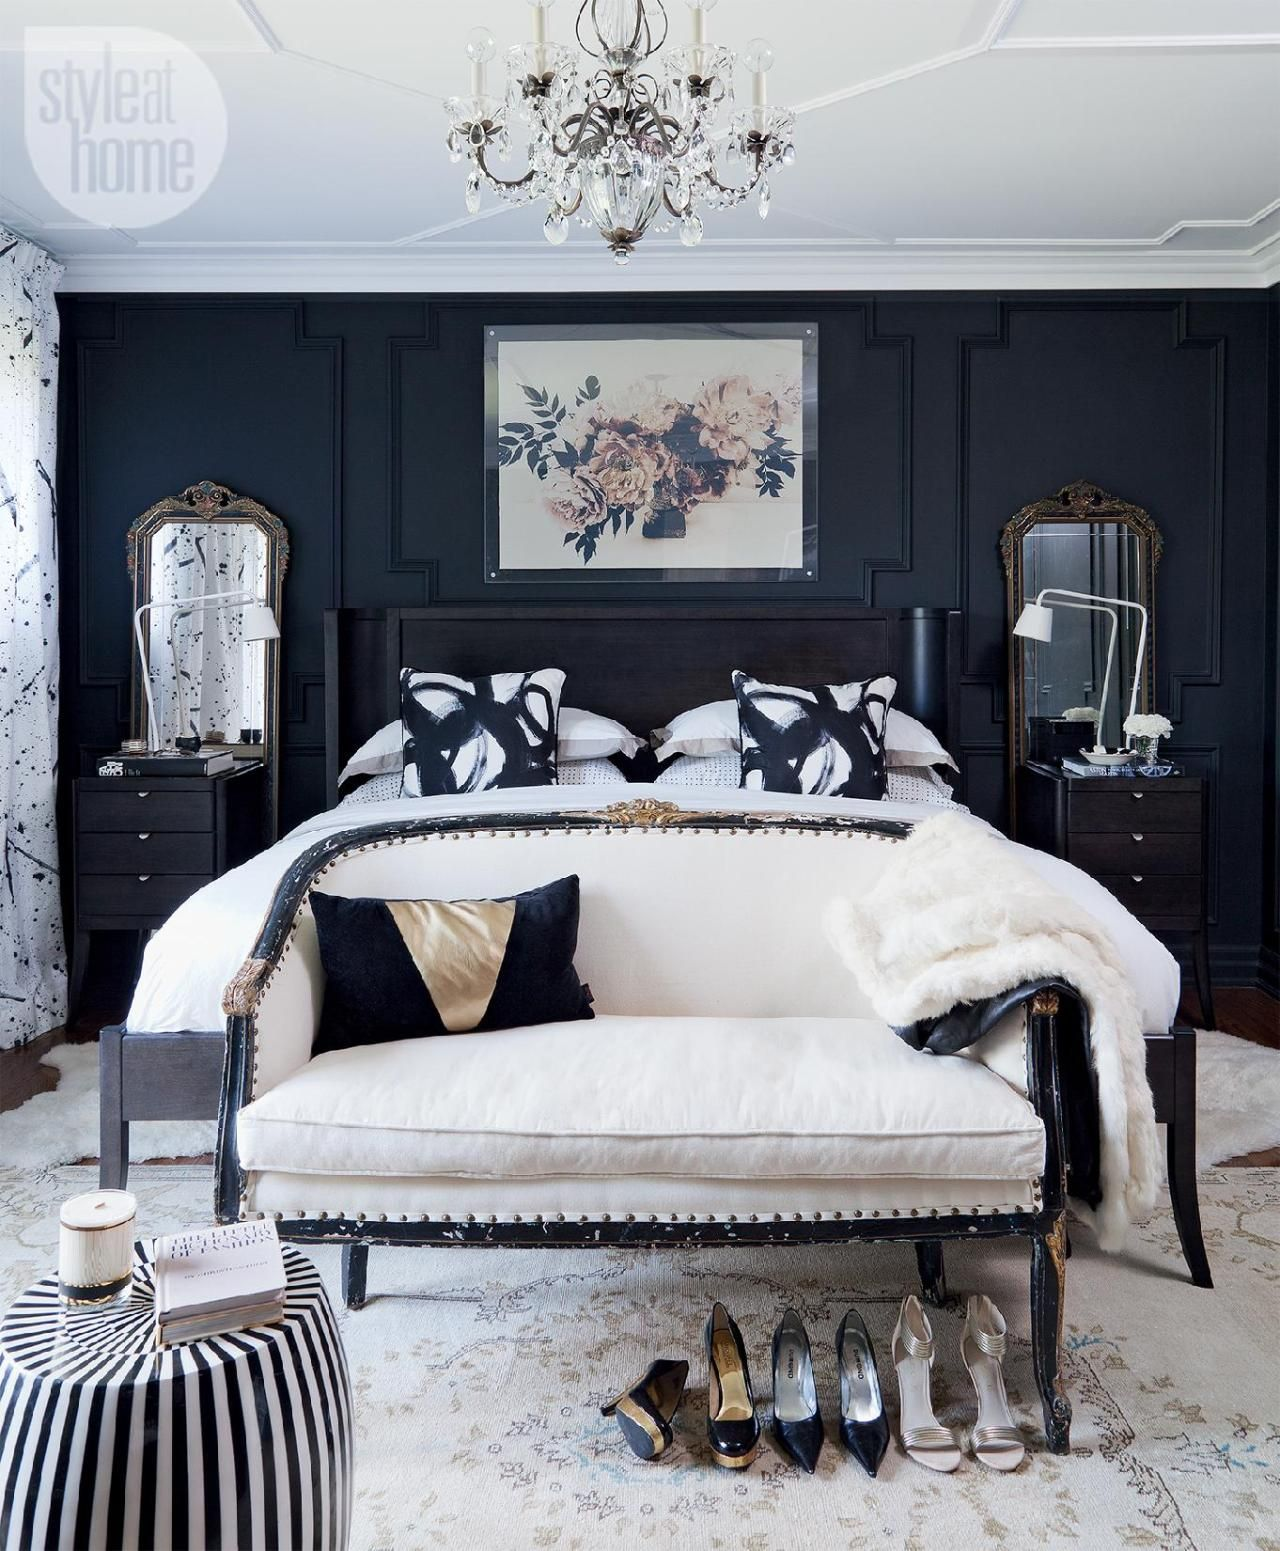 25 Beautiful Master Bedroom Ideas: Bedroom Design: Moody And Dramatic Master Suite {PHOTO